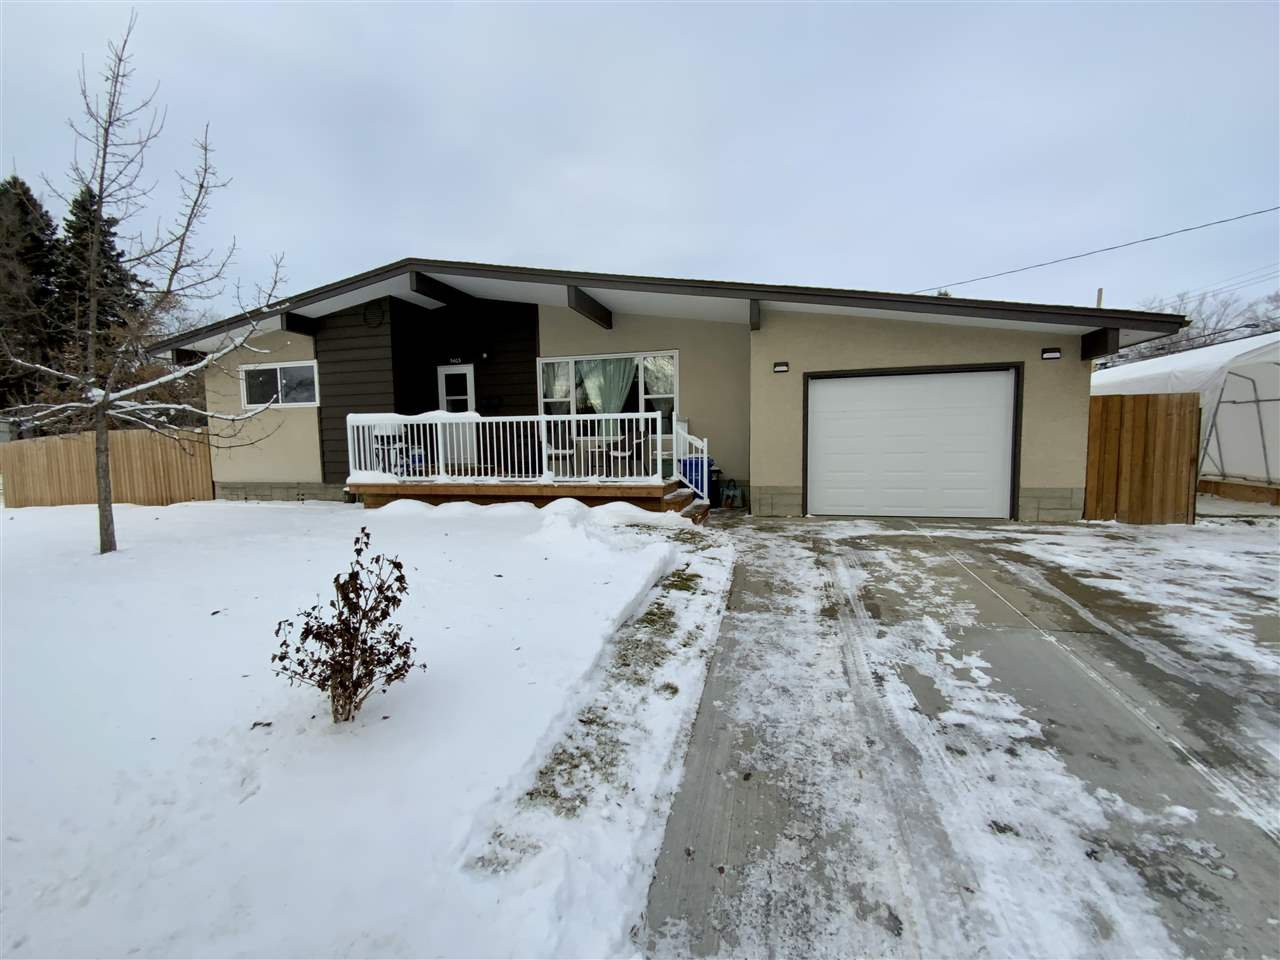 Main Photo: 5403 47 Street: Wetaskiwin House for sale : MLS®# E4220639